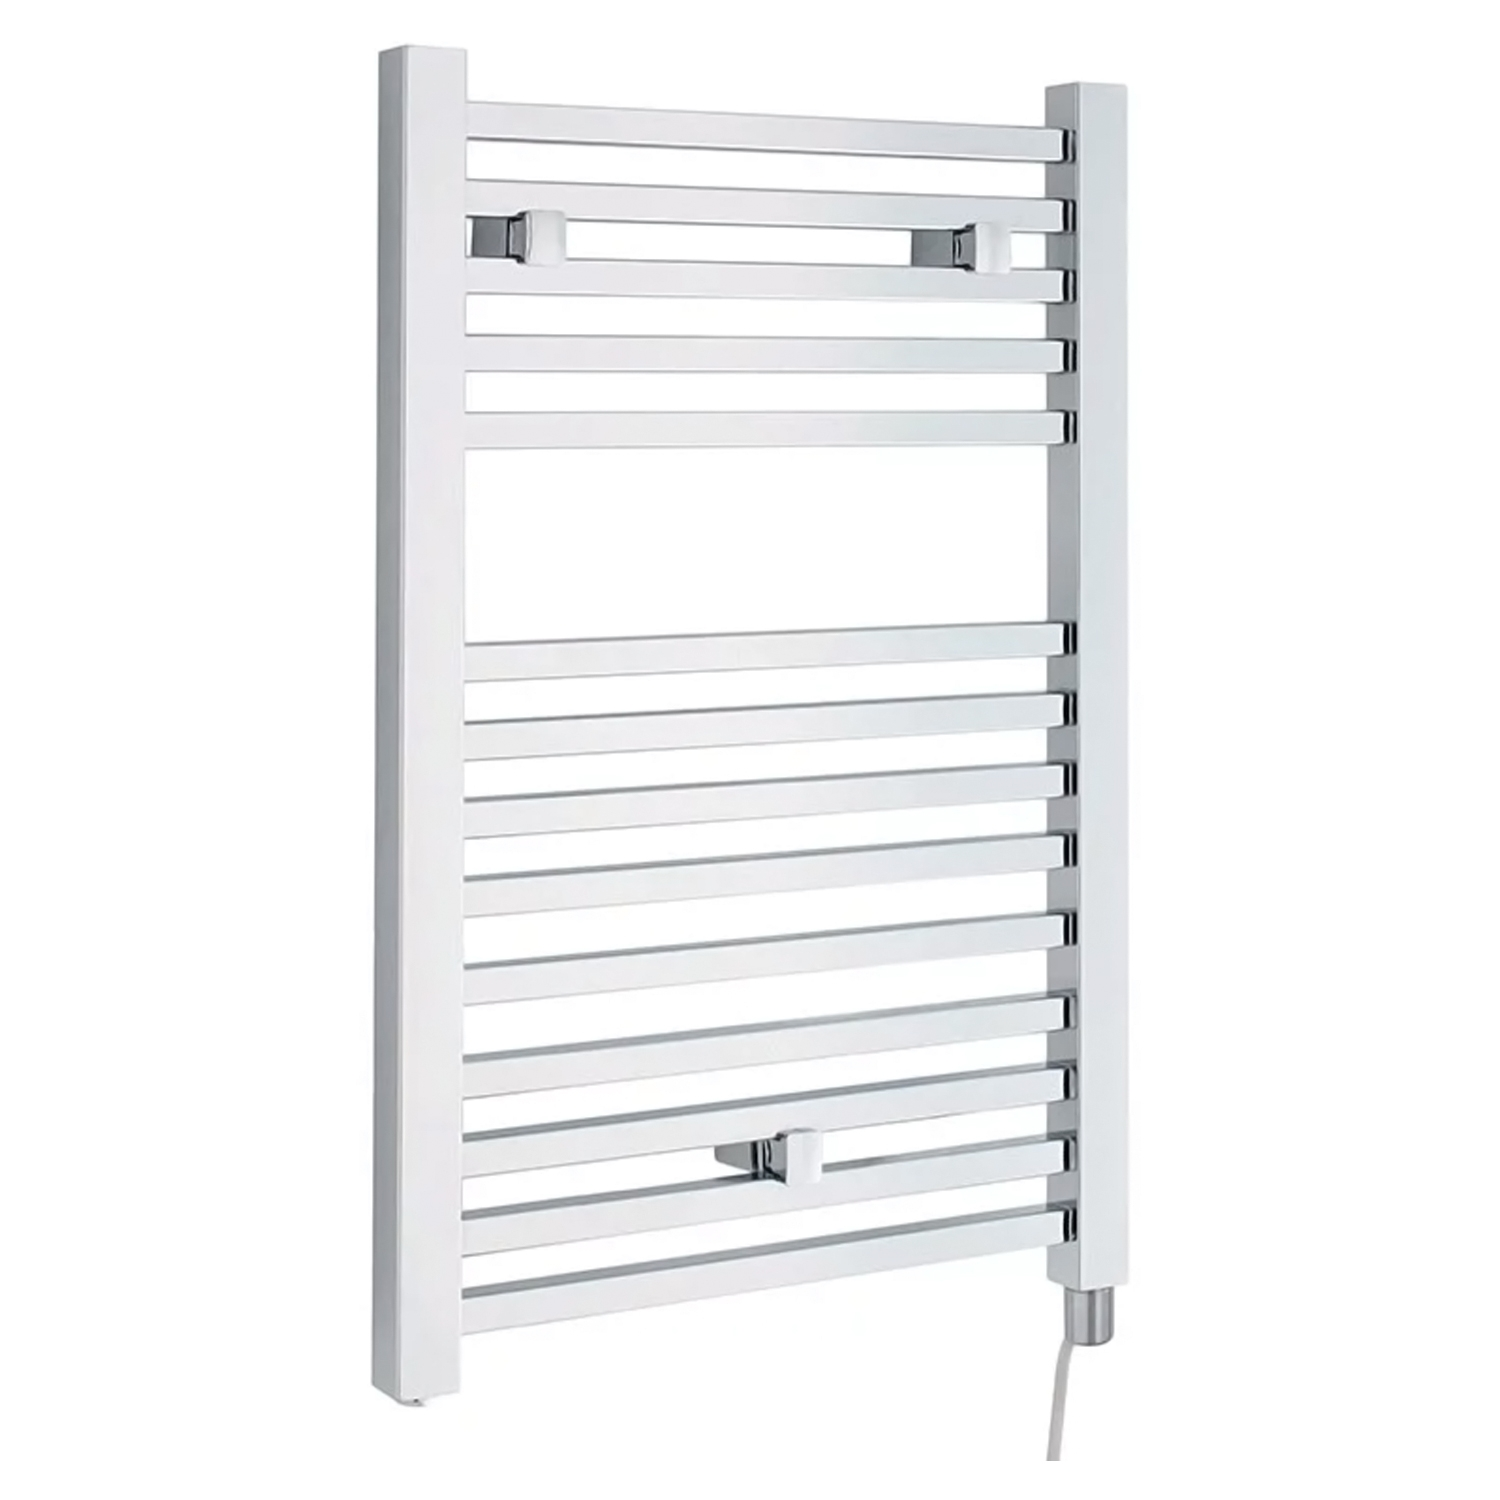 Hudson Reed Eton Electric Heated Towel Rail 690mm H x 500mm W - Chrome